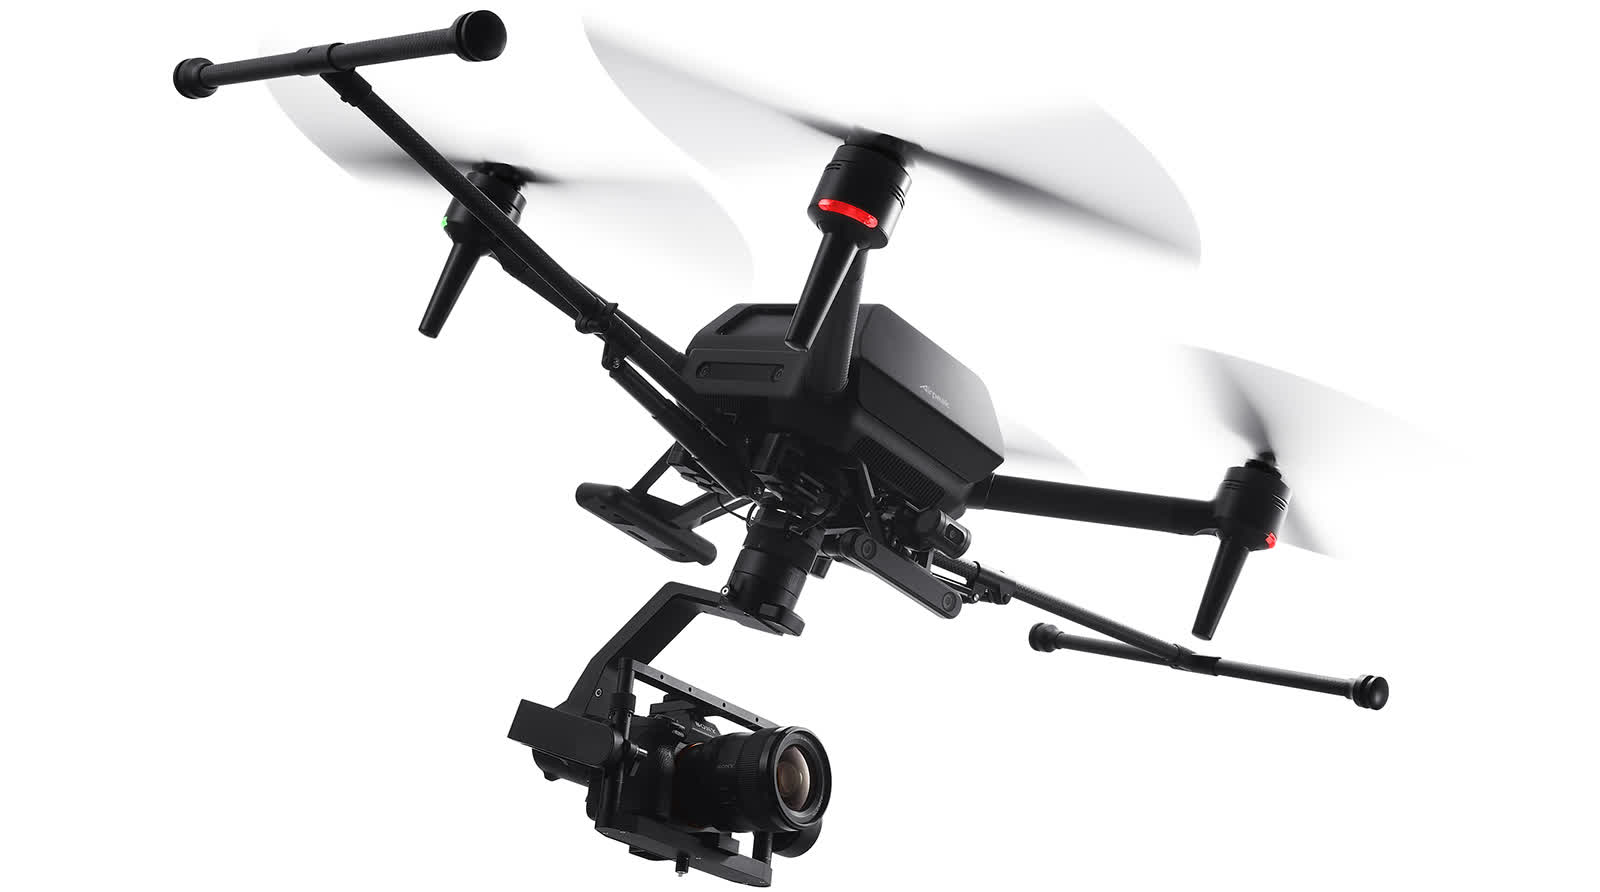 Sony formally announces the Airpeak S1, a professional-quality drone priced at $ 9,000